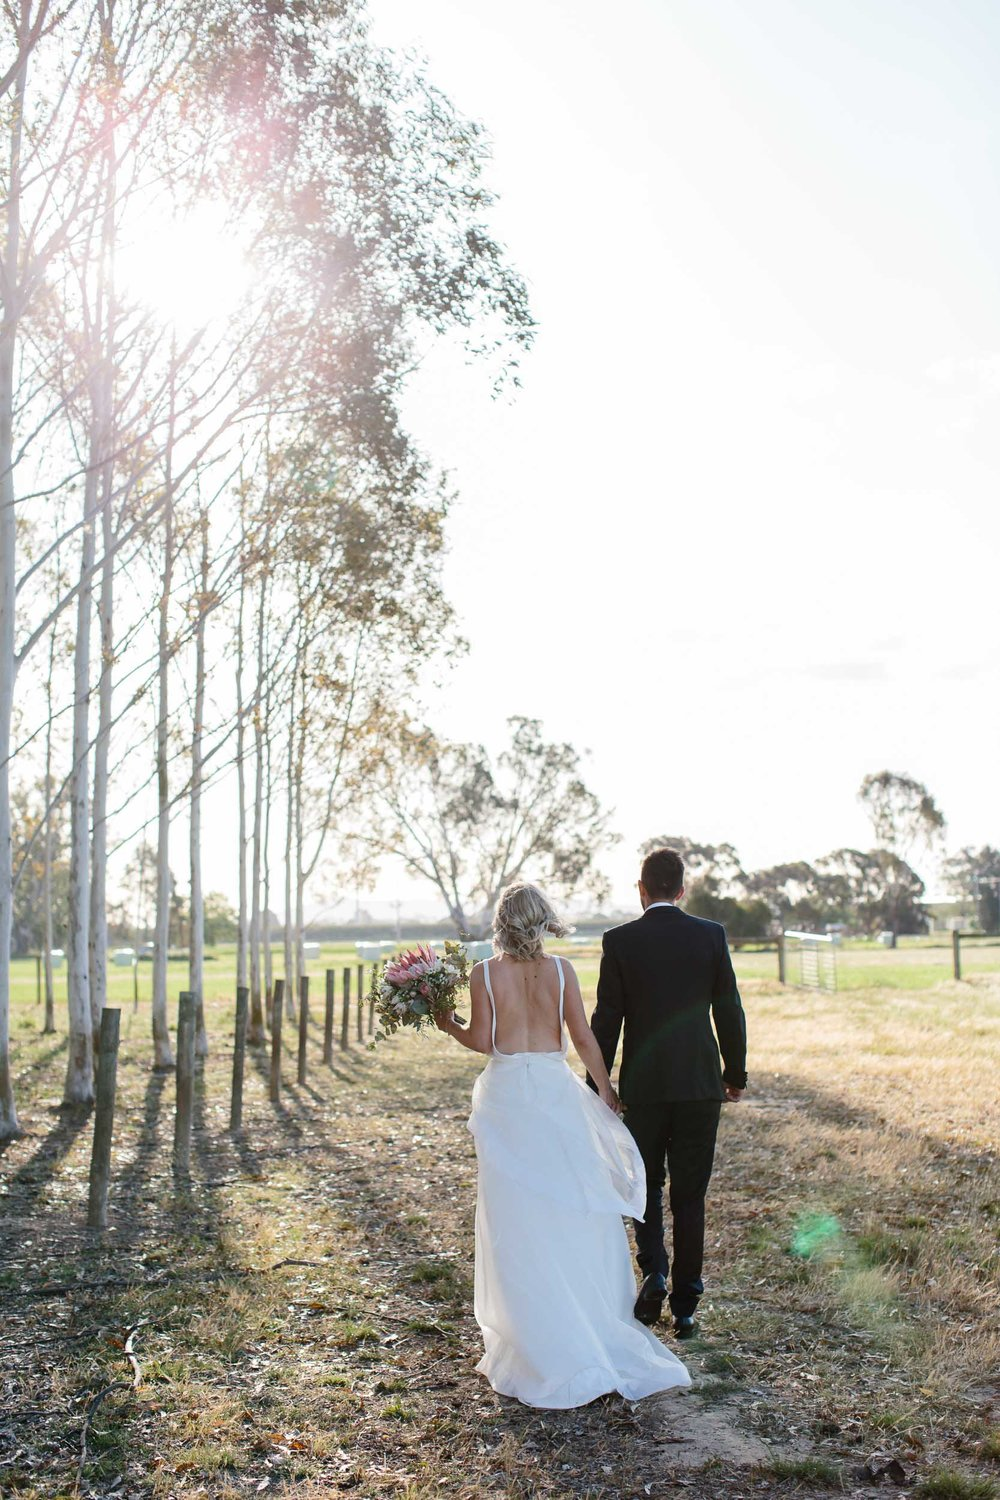 Kas-Richards-Wedding-Photographer-Country-Winery-Wedding-One-Day-Bridal-Gown-61.jpg